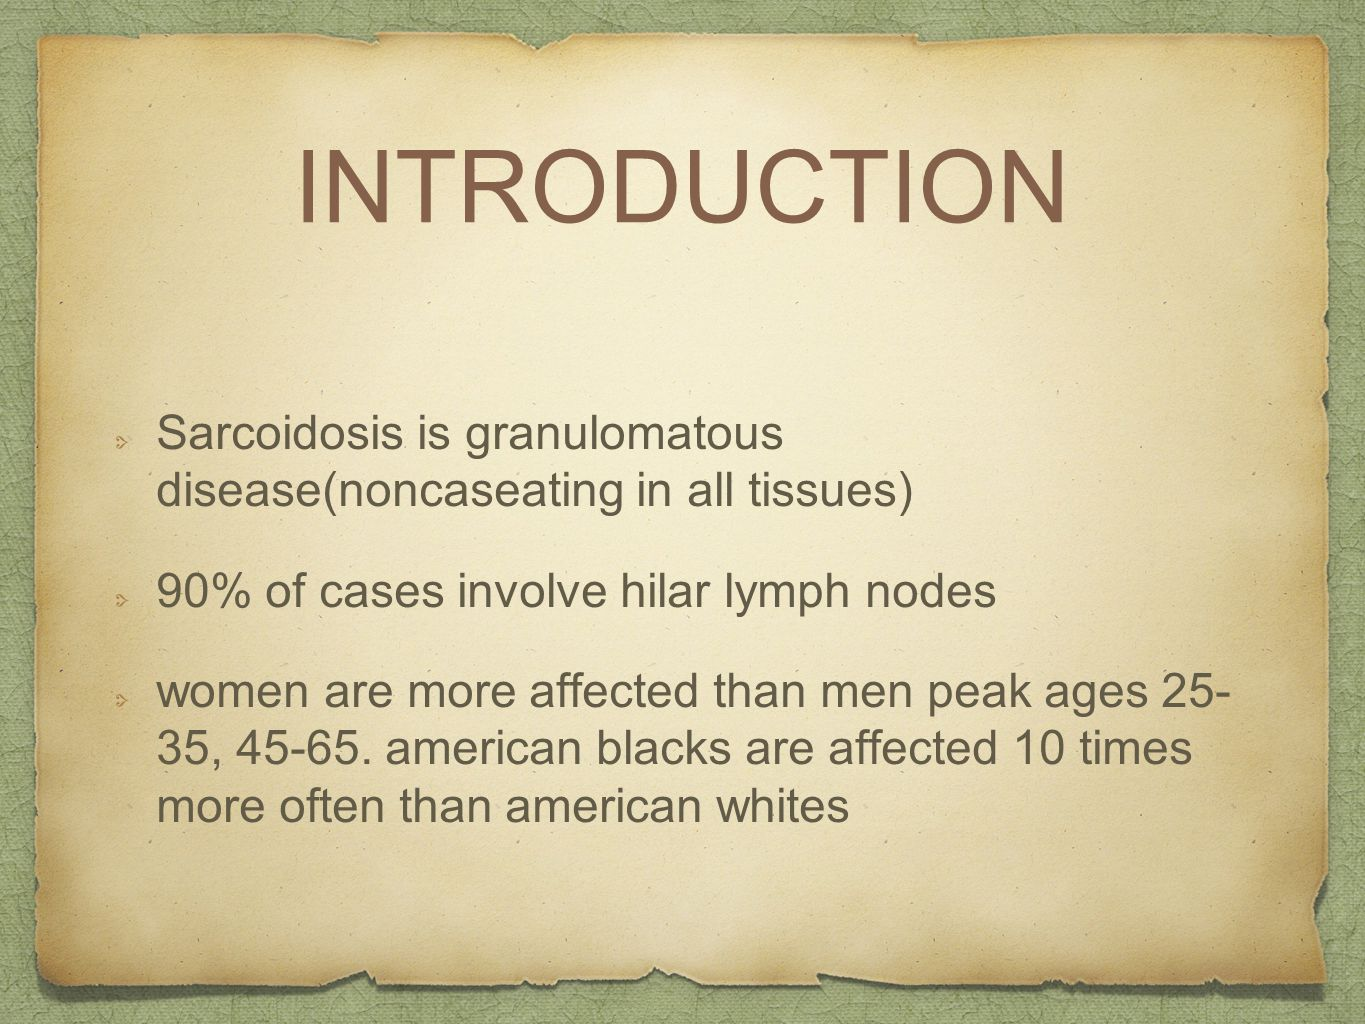 INTRODUCTION Sarcoidosis is granulomatous disease(noncaseating in all tissues) 90% of cases involve hilar lymph nodes women are more affected than men